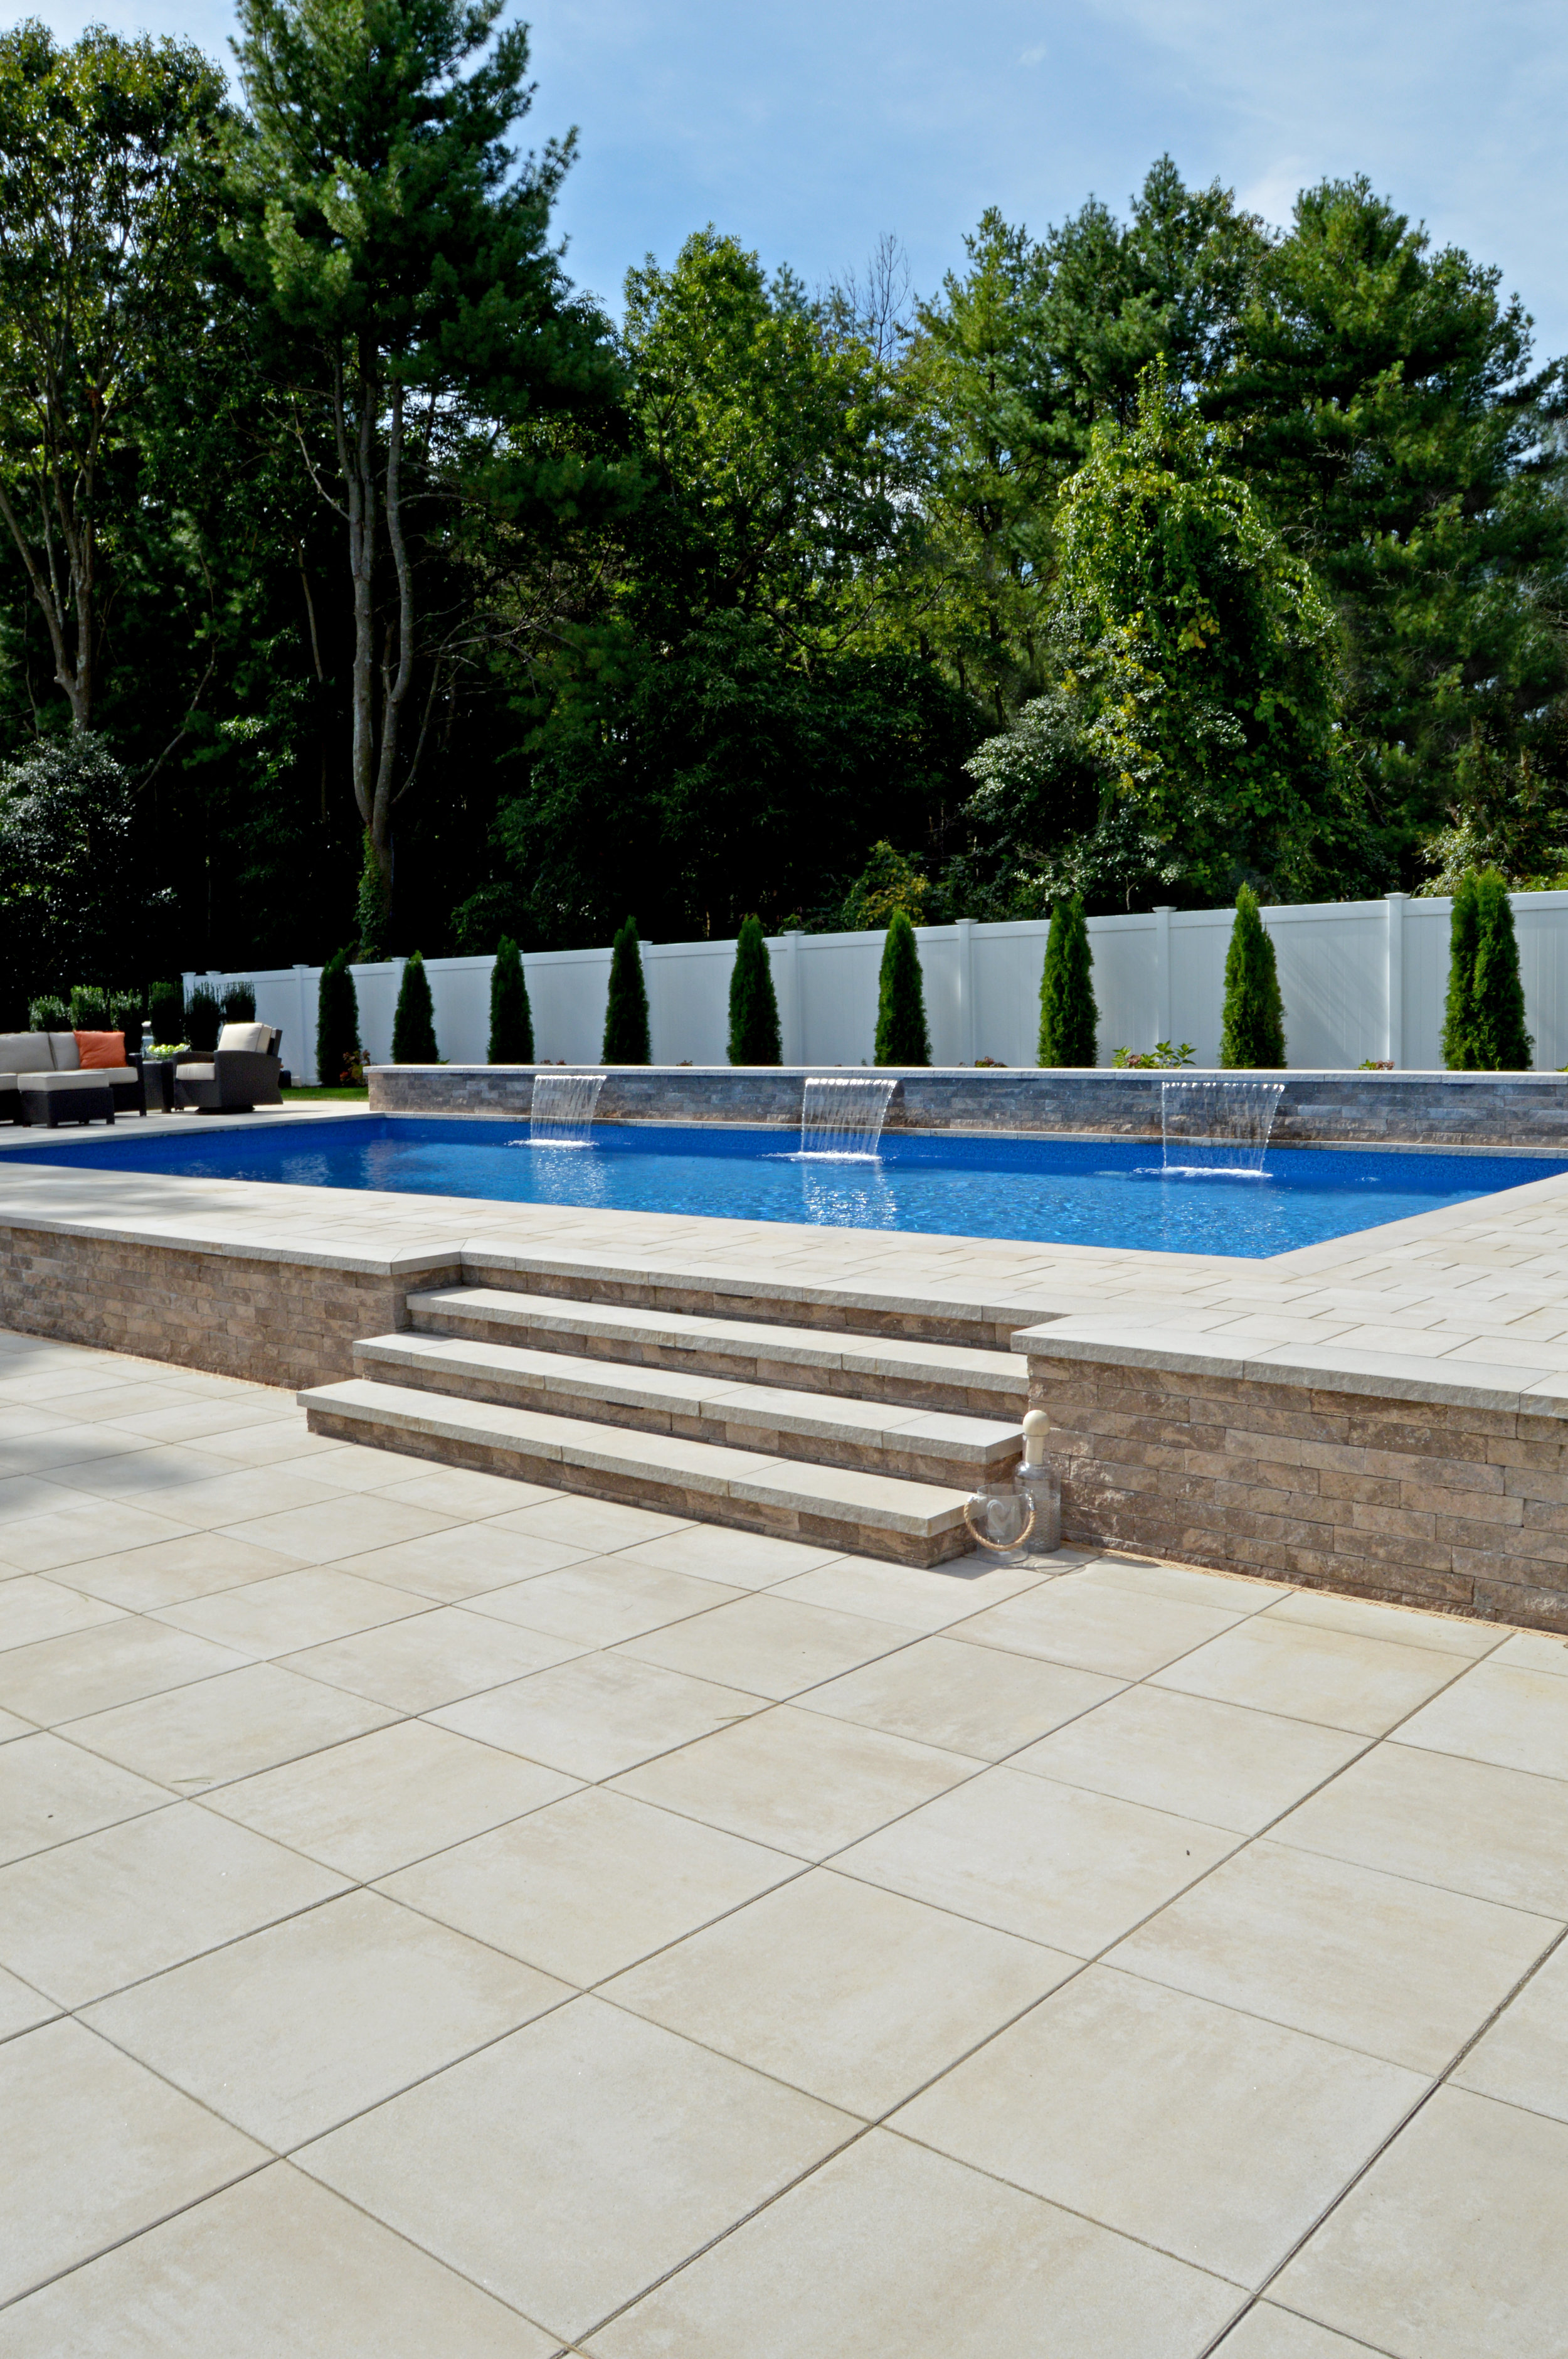 Landscape design in Hauppauge, NY